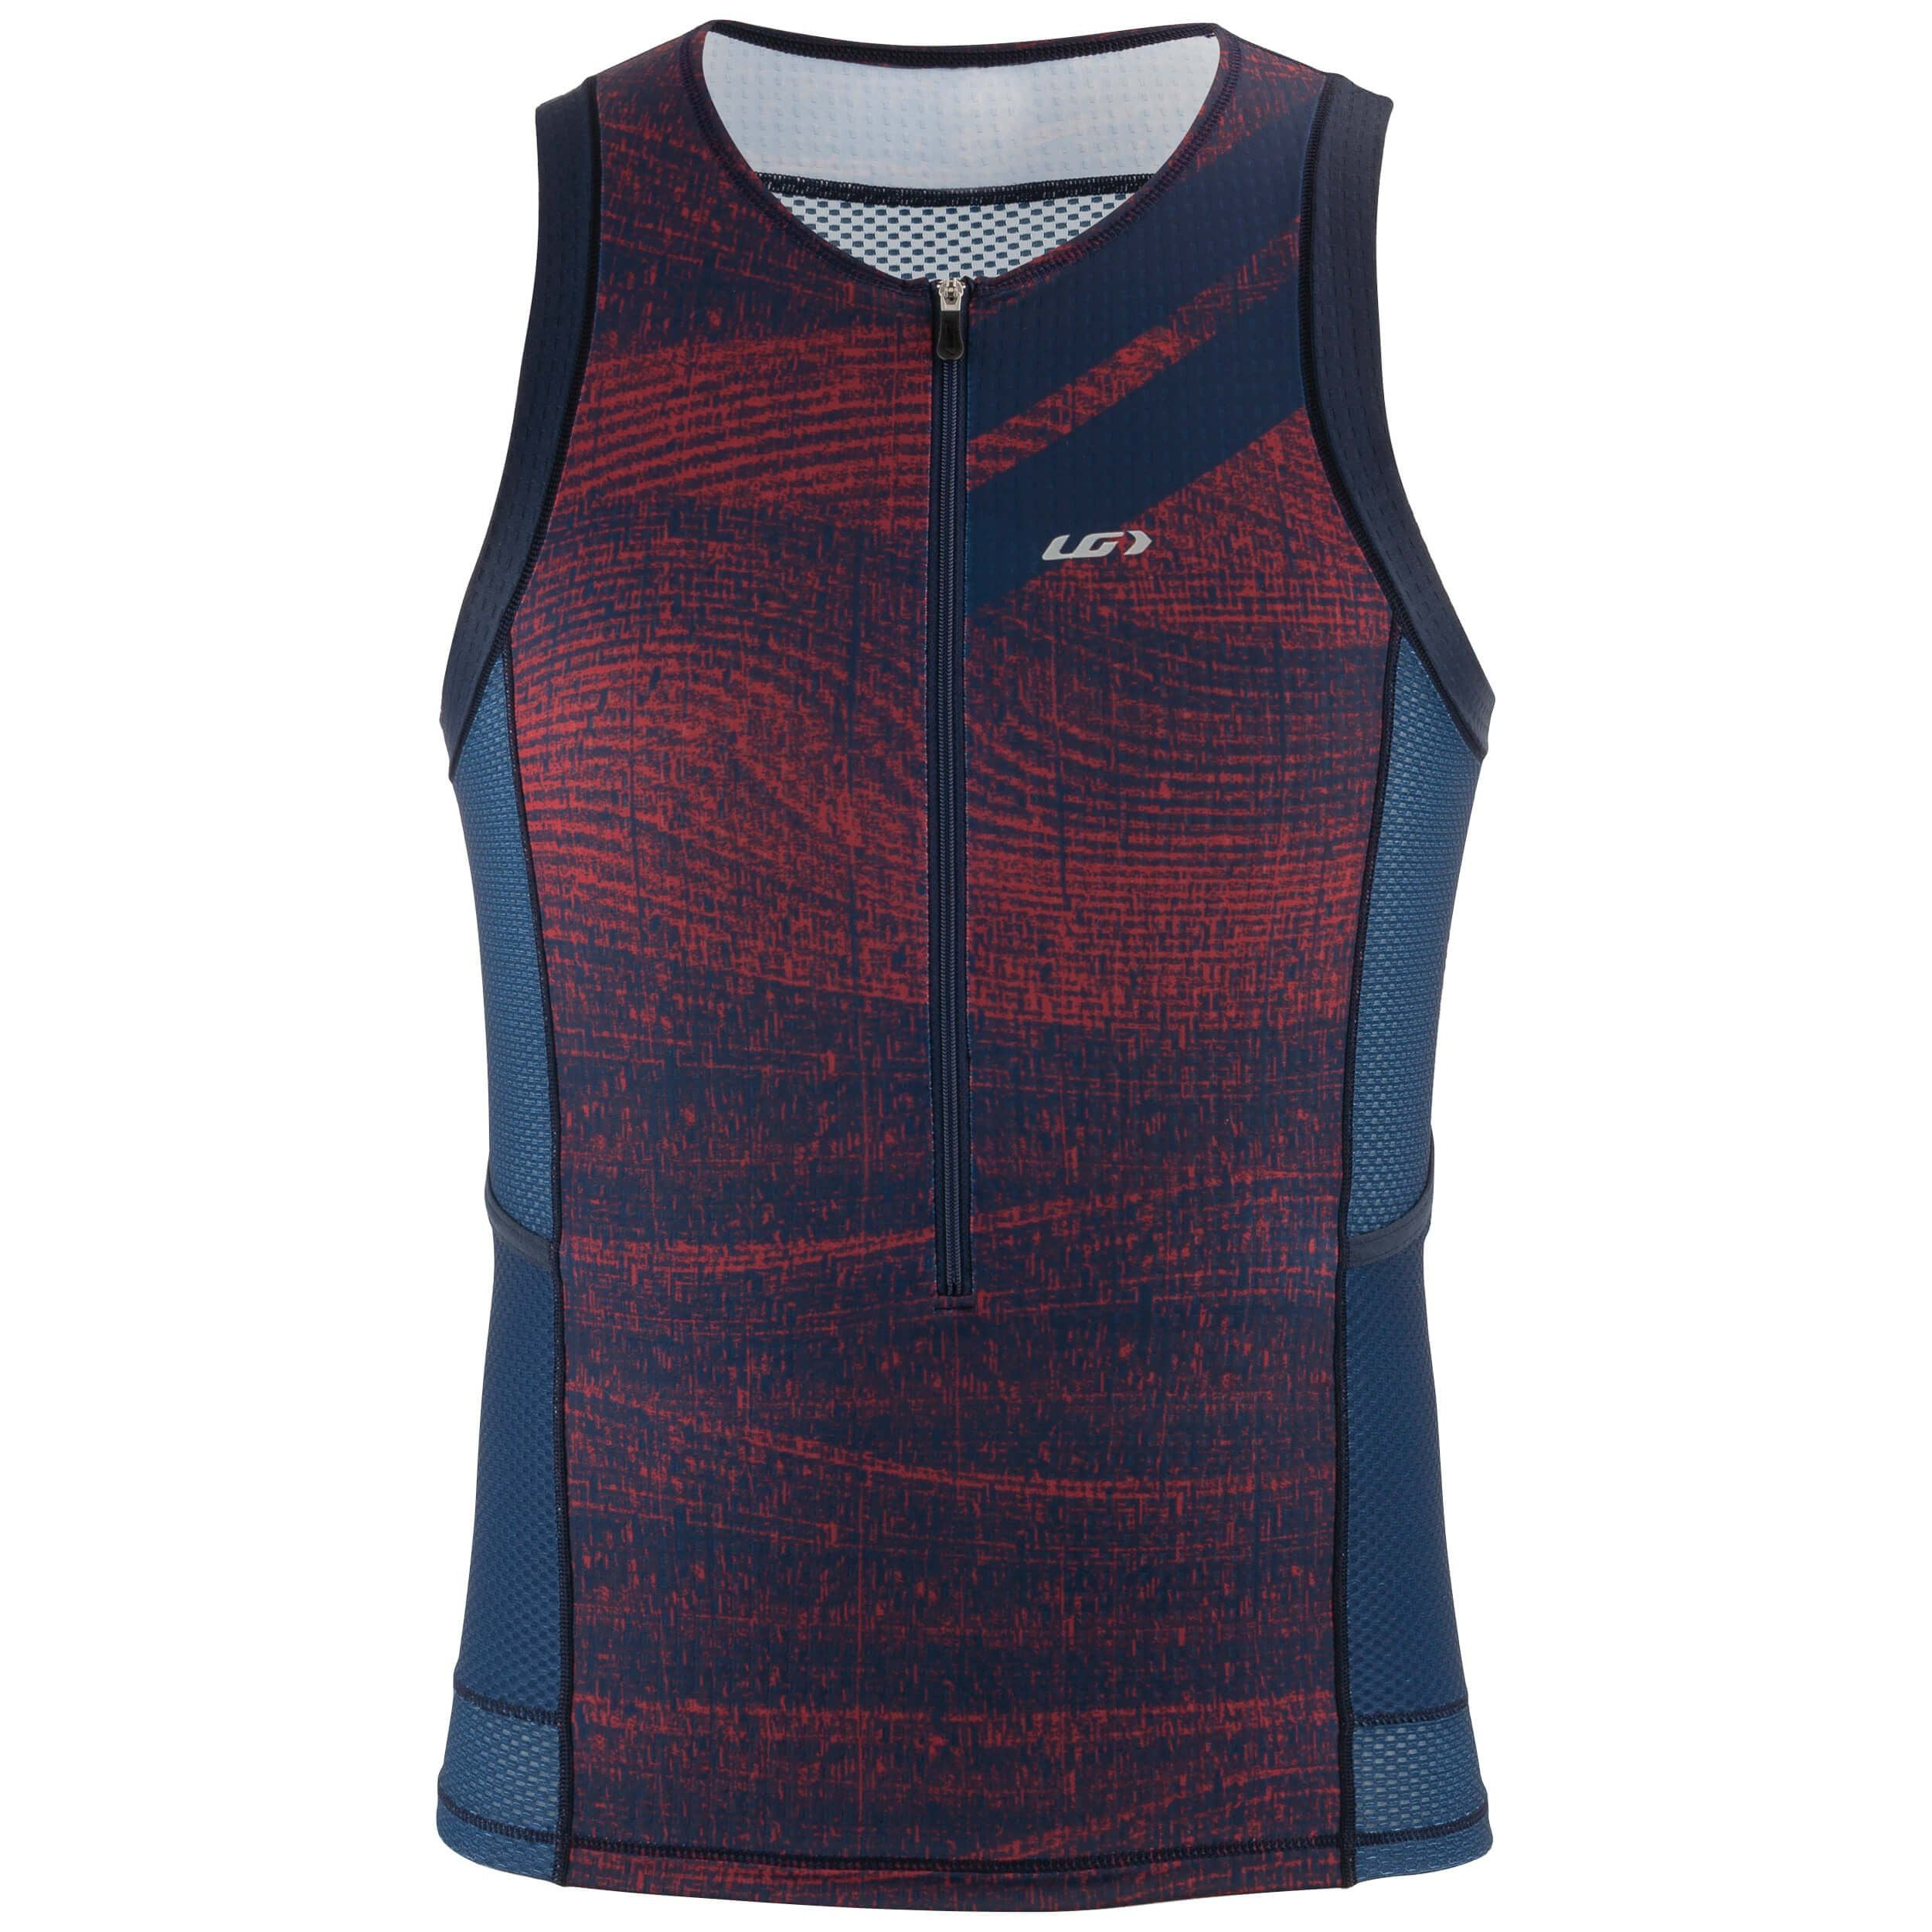 2020 Garneau Men's Vent Tri Top Sleeveless